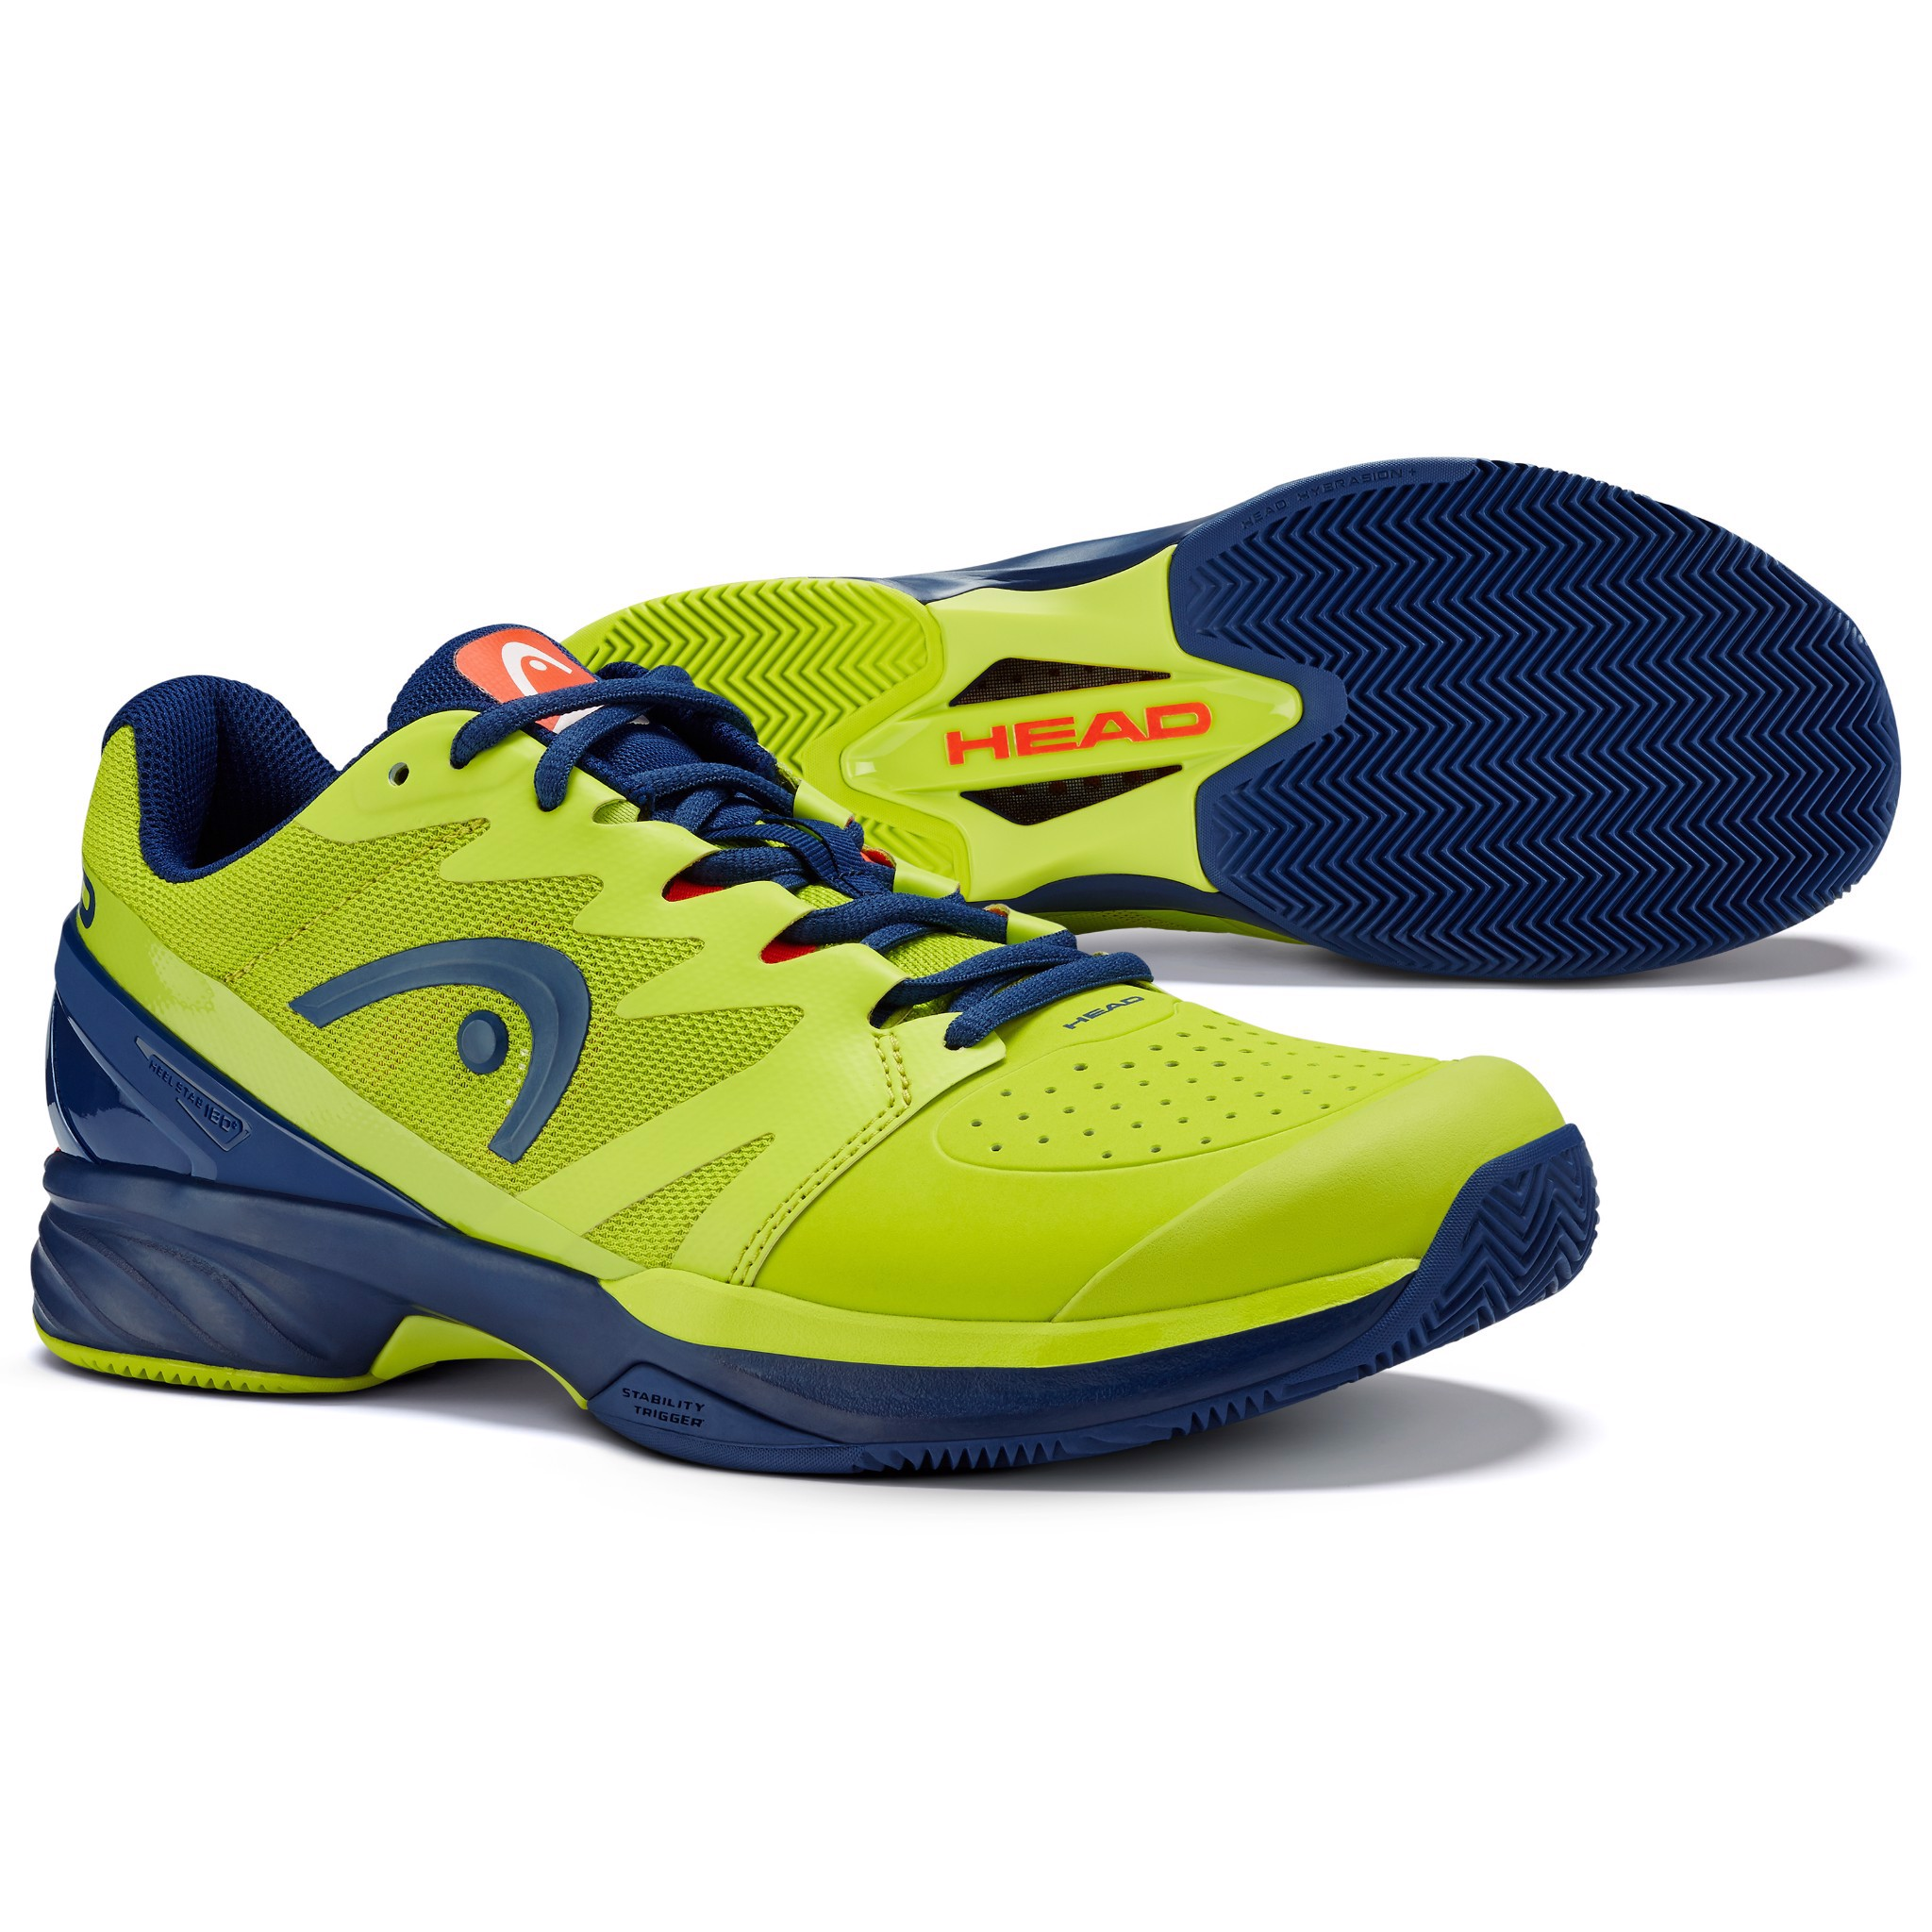 SPRINT PRO CLAY 2.0 MEN